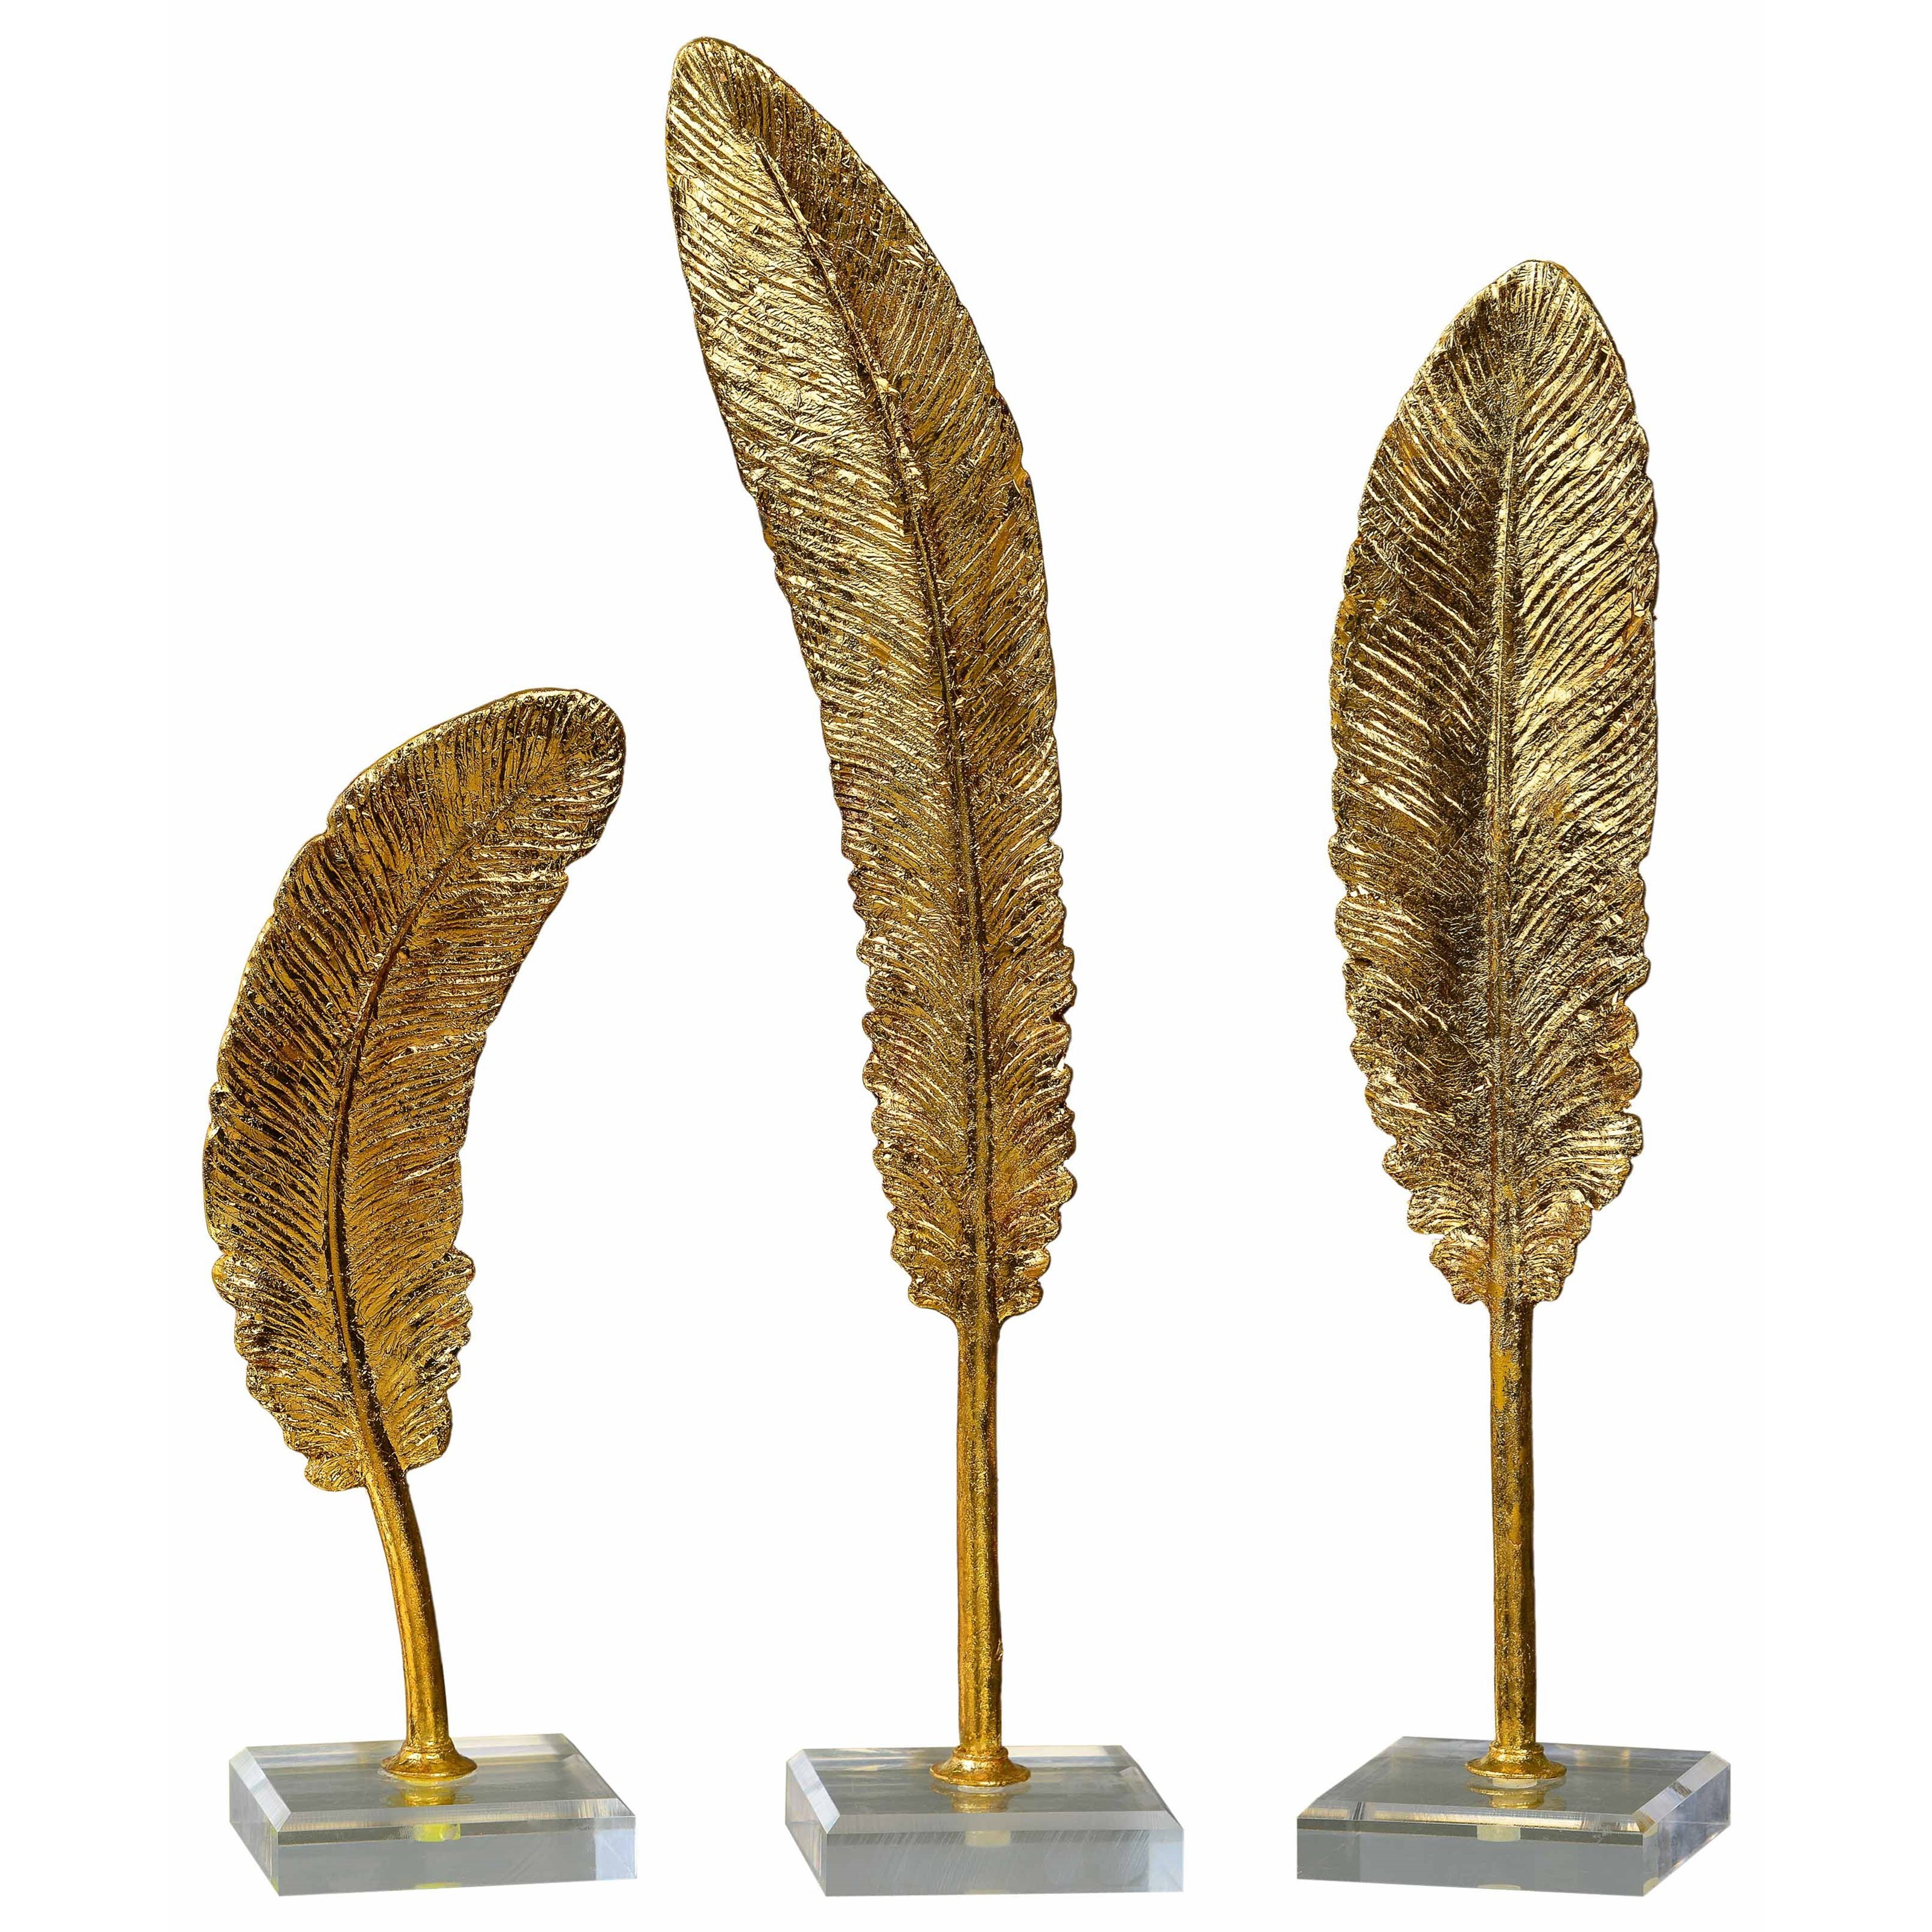 Uttermost Accessories Feathers Gold Sculpture S/3 - Item Number: 20079